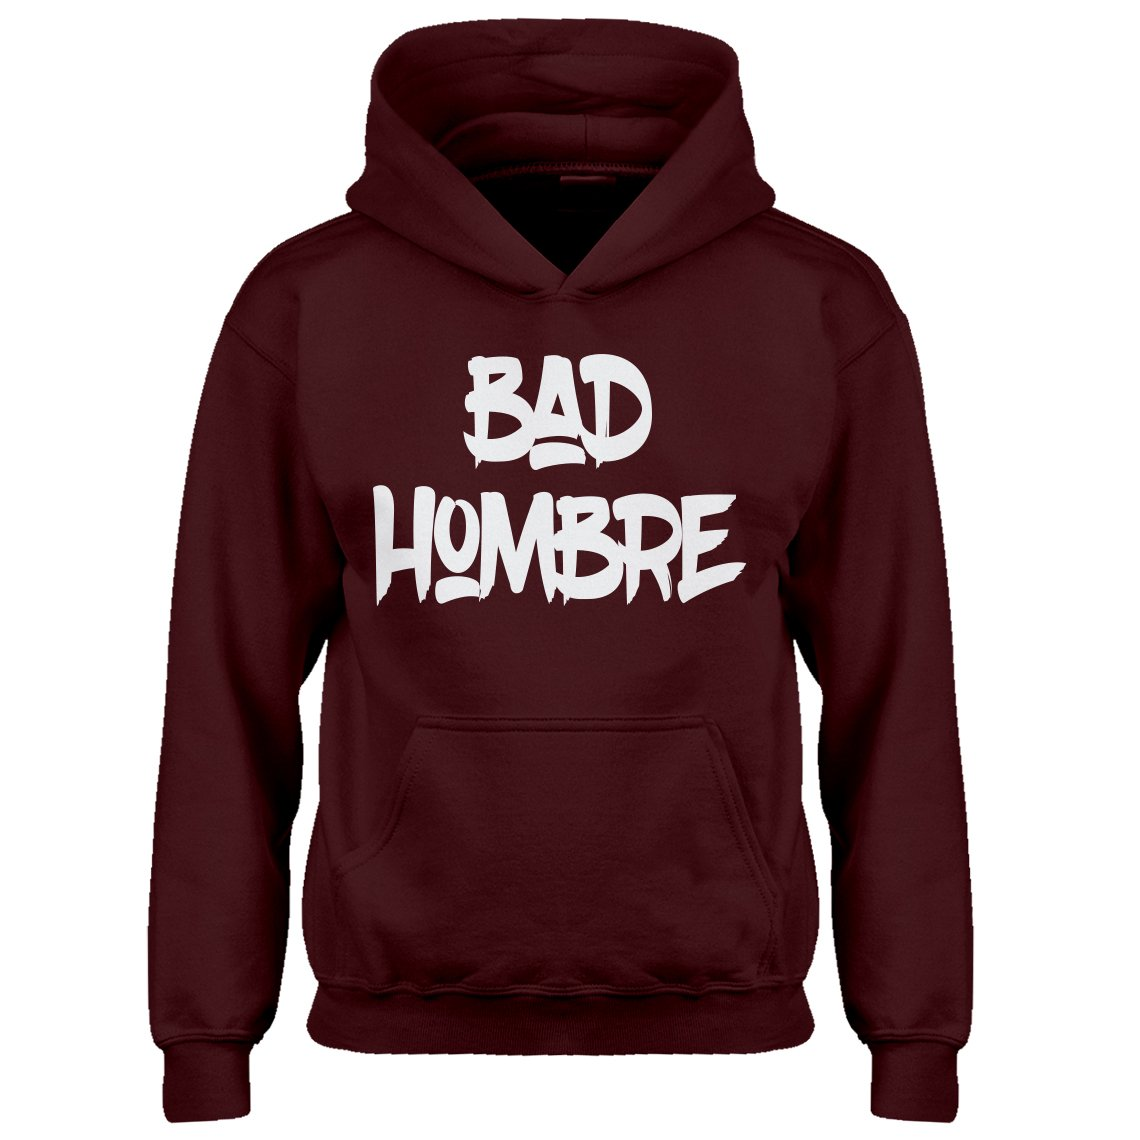 Indica Plateau Youth Bad Hombre Vote 2016 Kids Hoodie